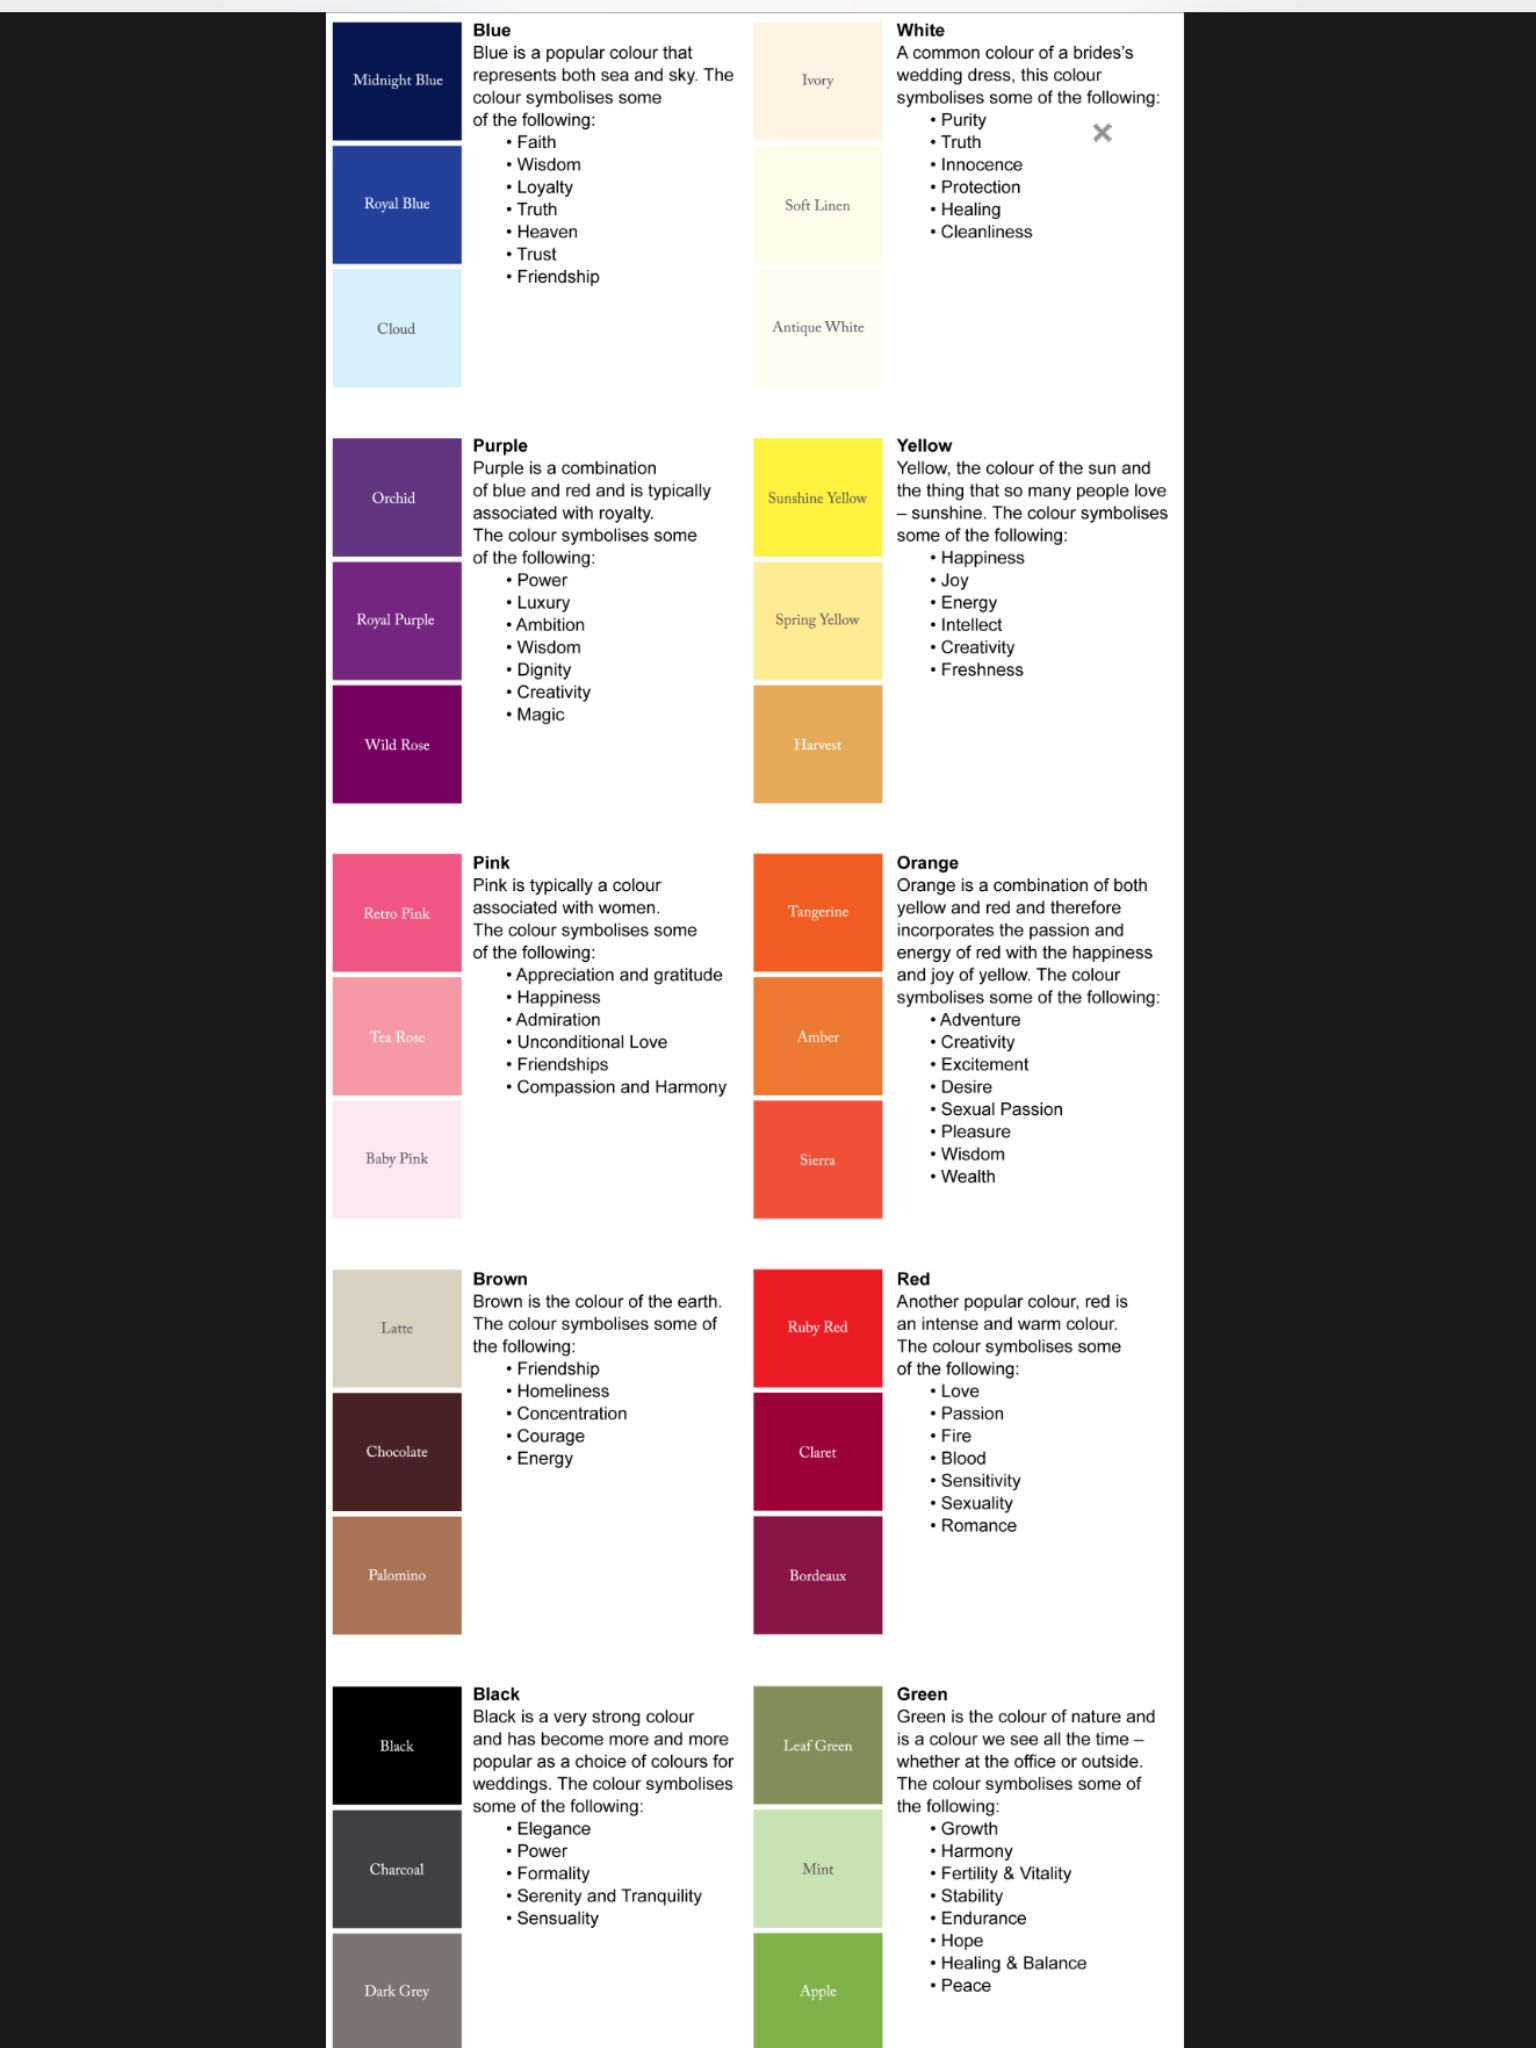 Colors Of Candles And Their Meaning Candle Color Meanings Color Meanings Colorful Candles